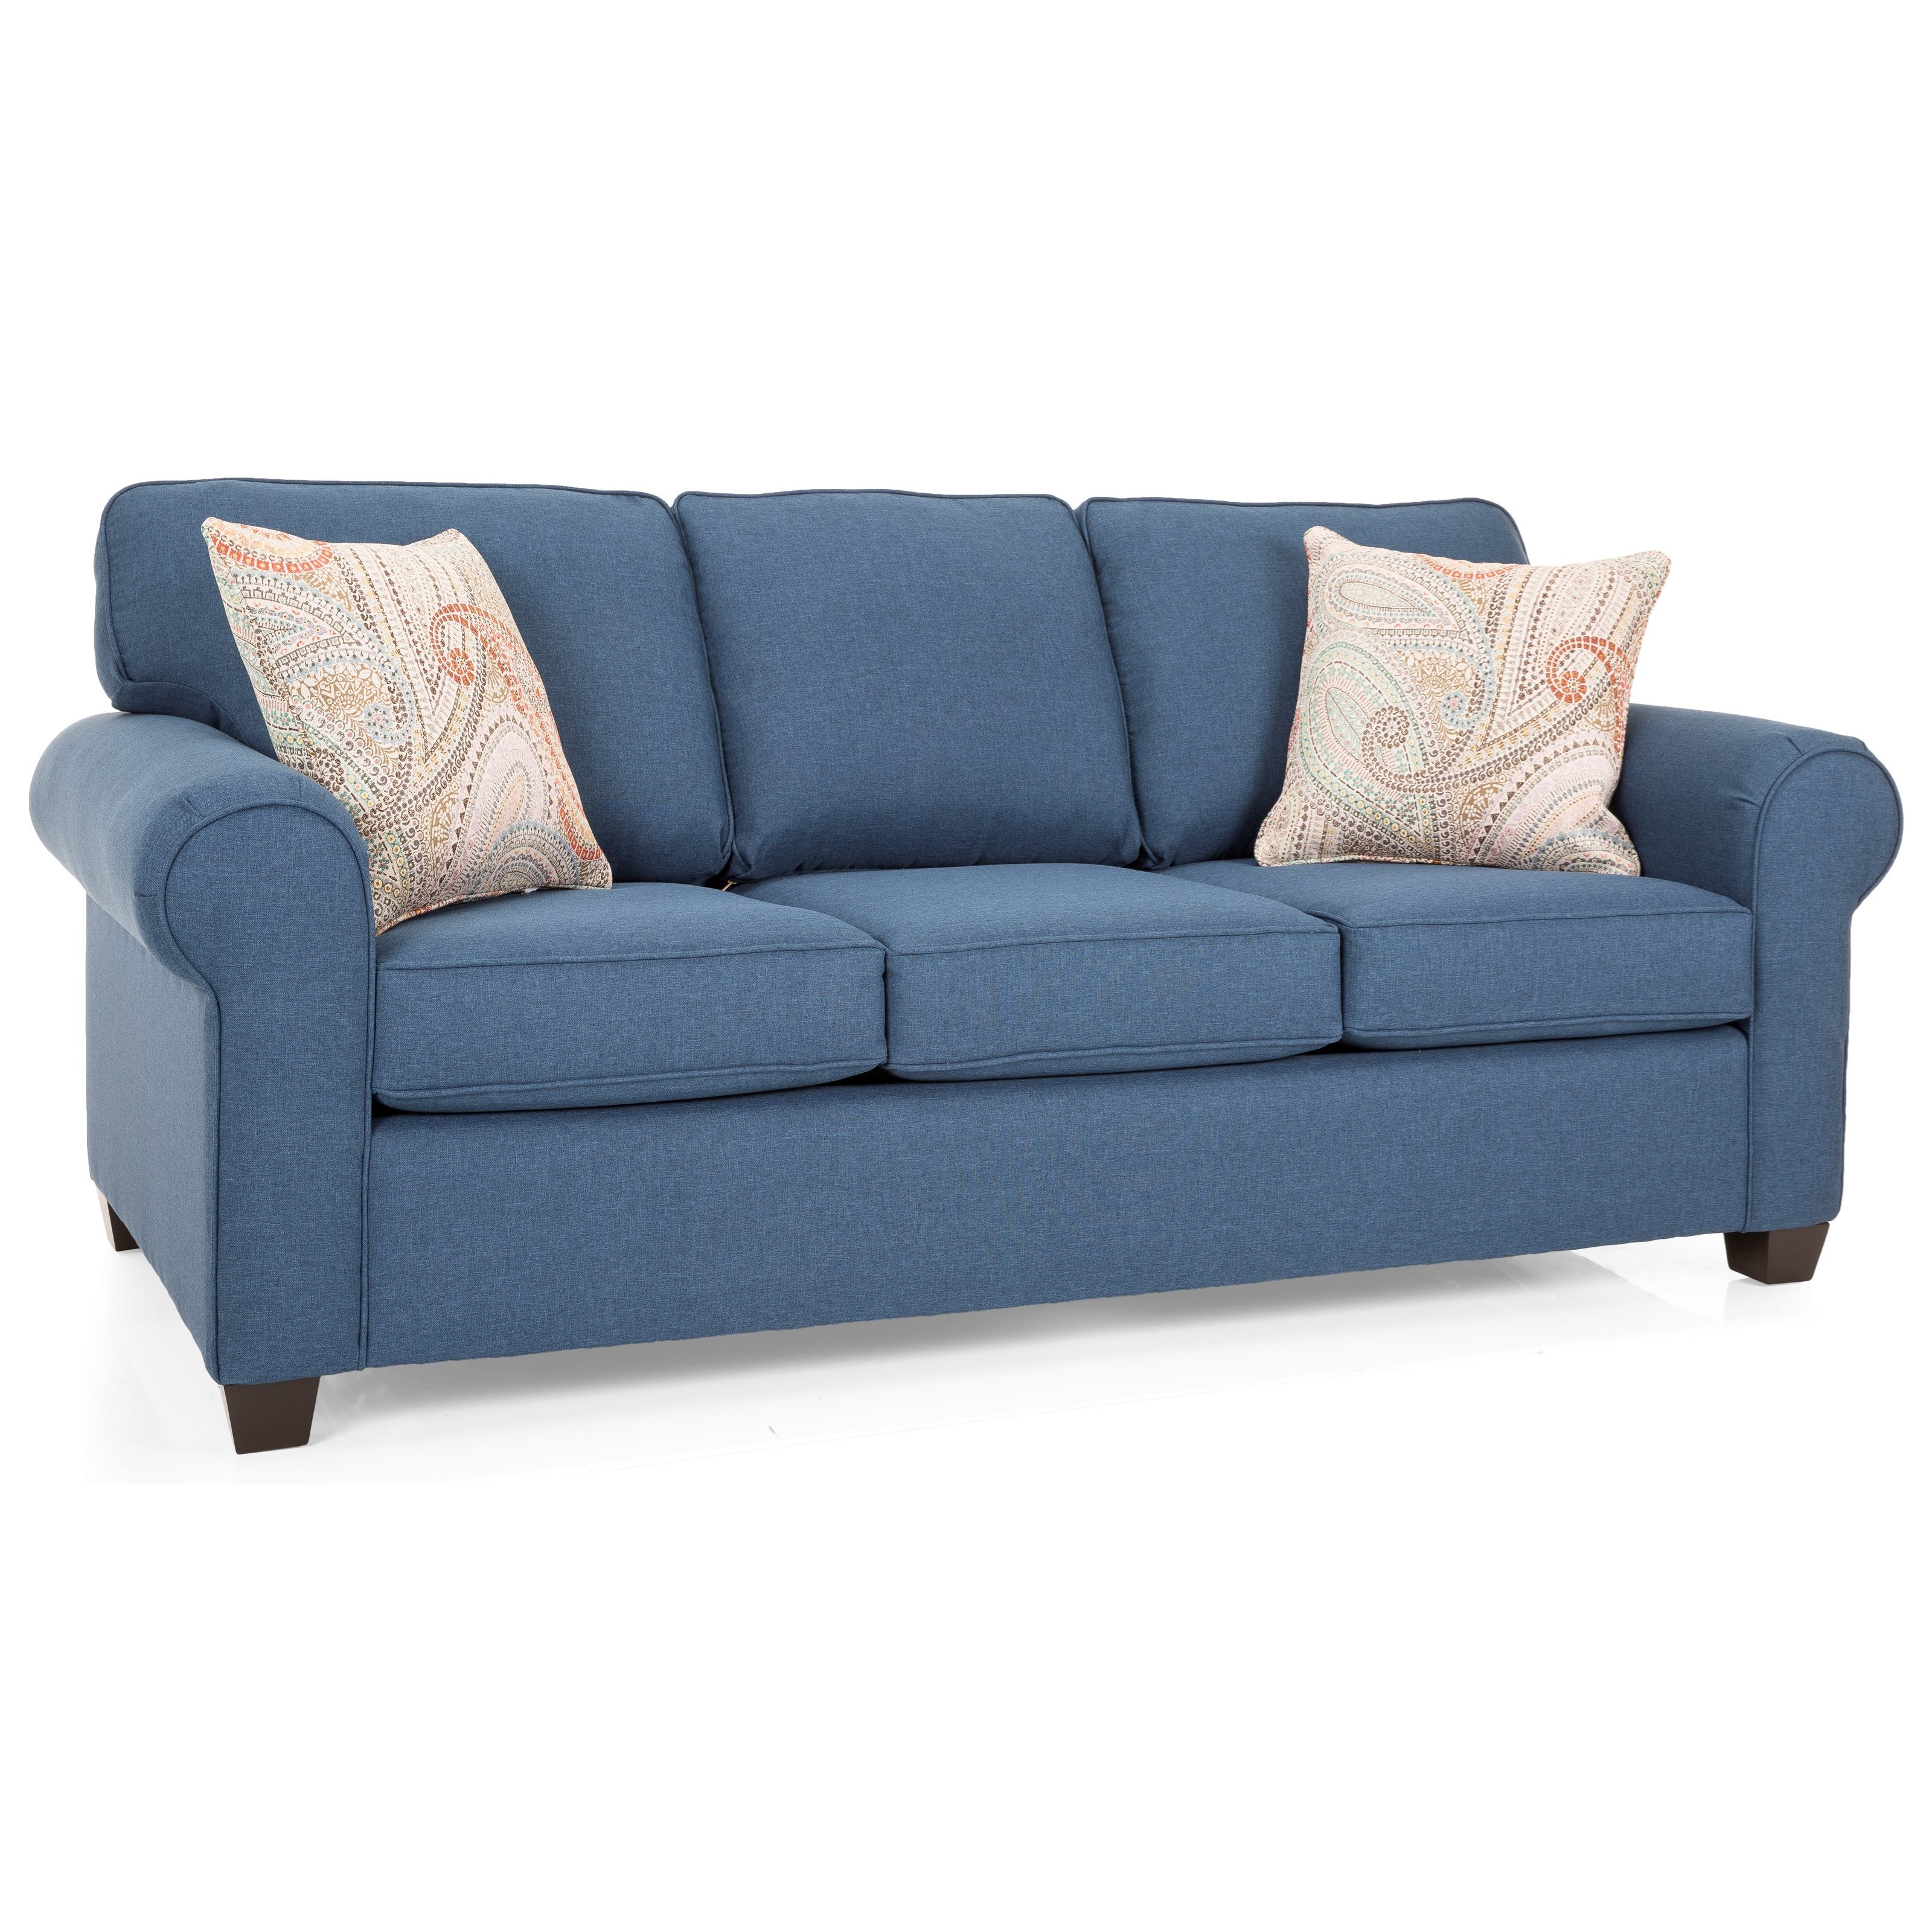 2179 Queen Bed Sofa by Decor-Rest at Stoney Creek Furniture